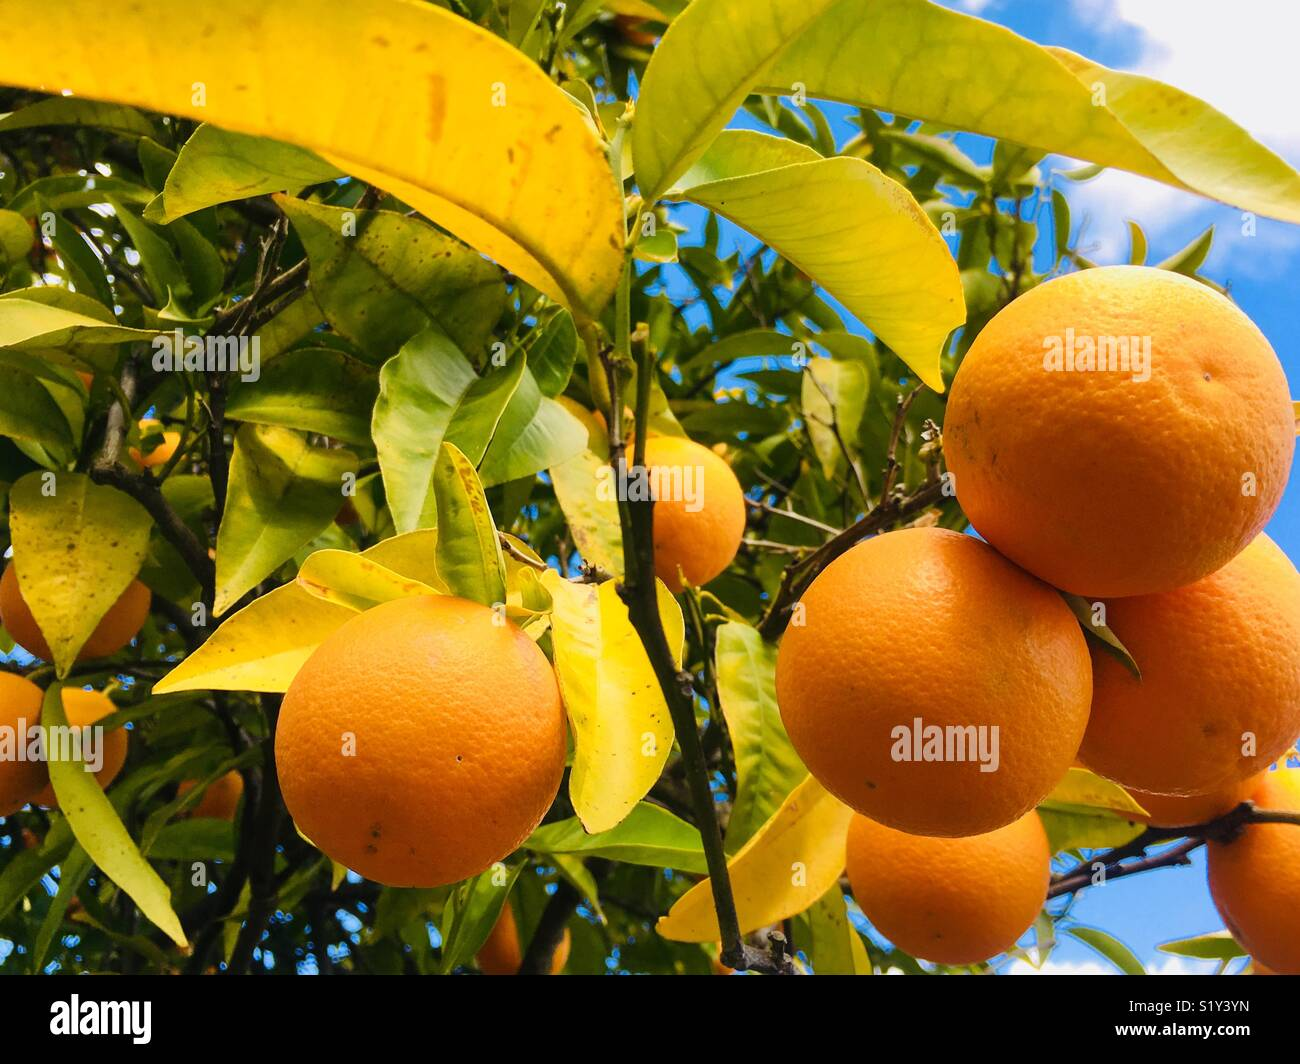 Ripe oranges and leaves - Stock Image